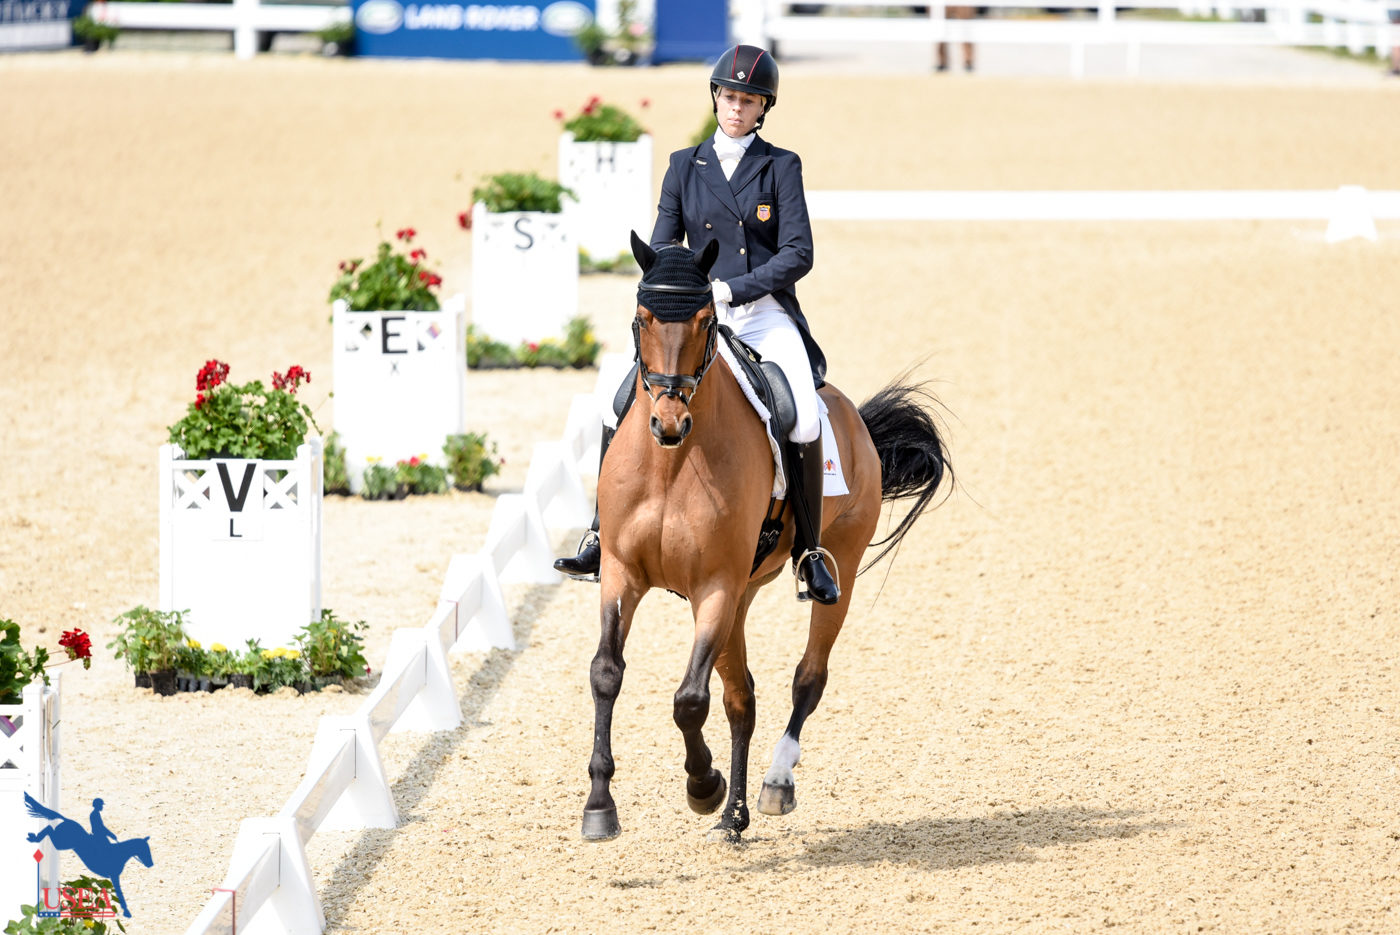 18th - Mara Depuy and Congo Brazzaville C - 44.7